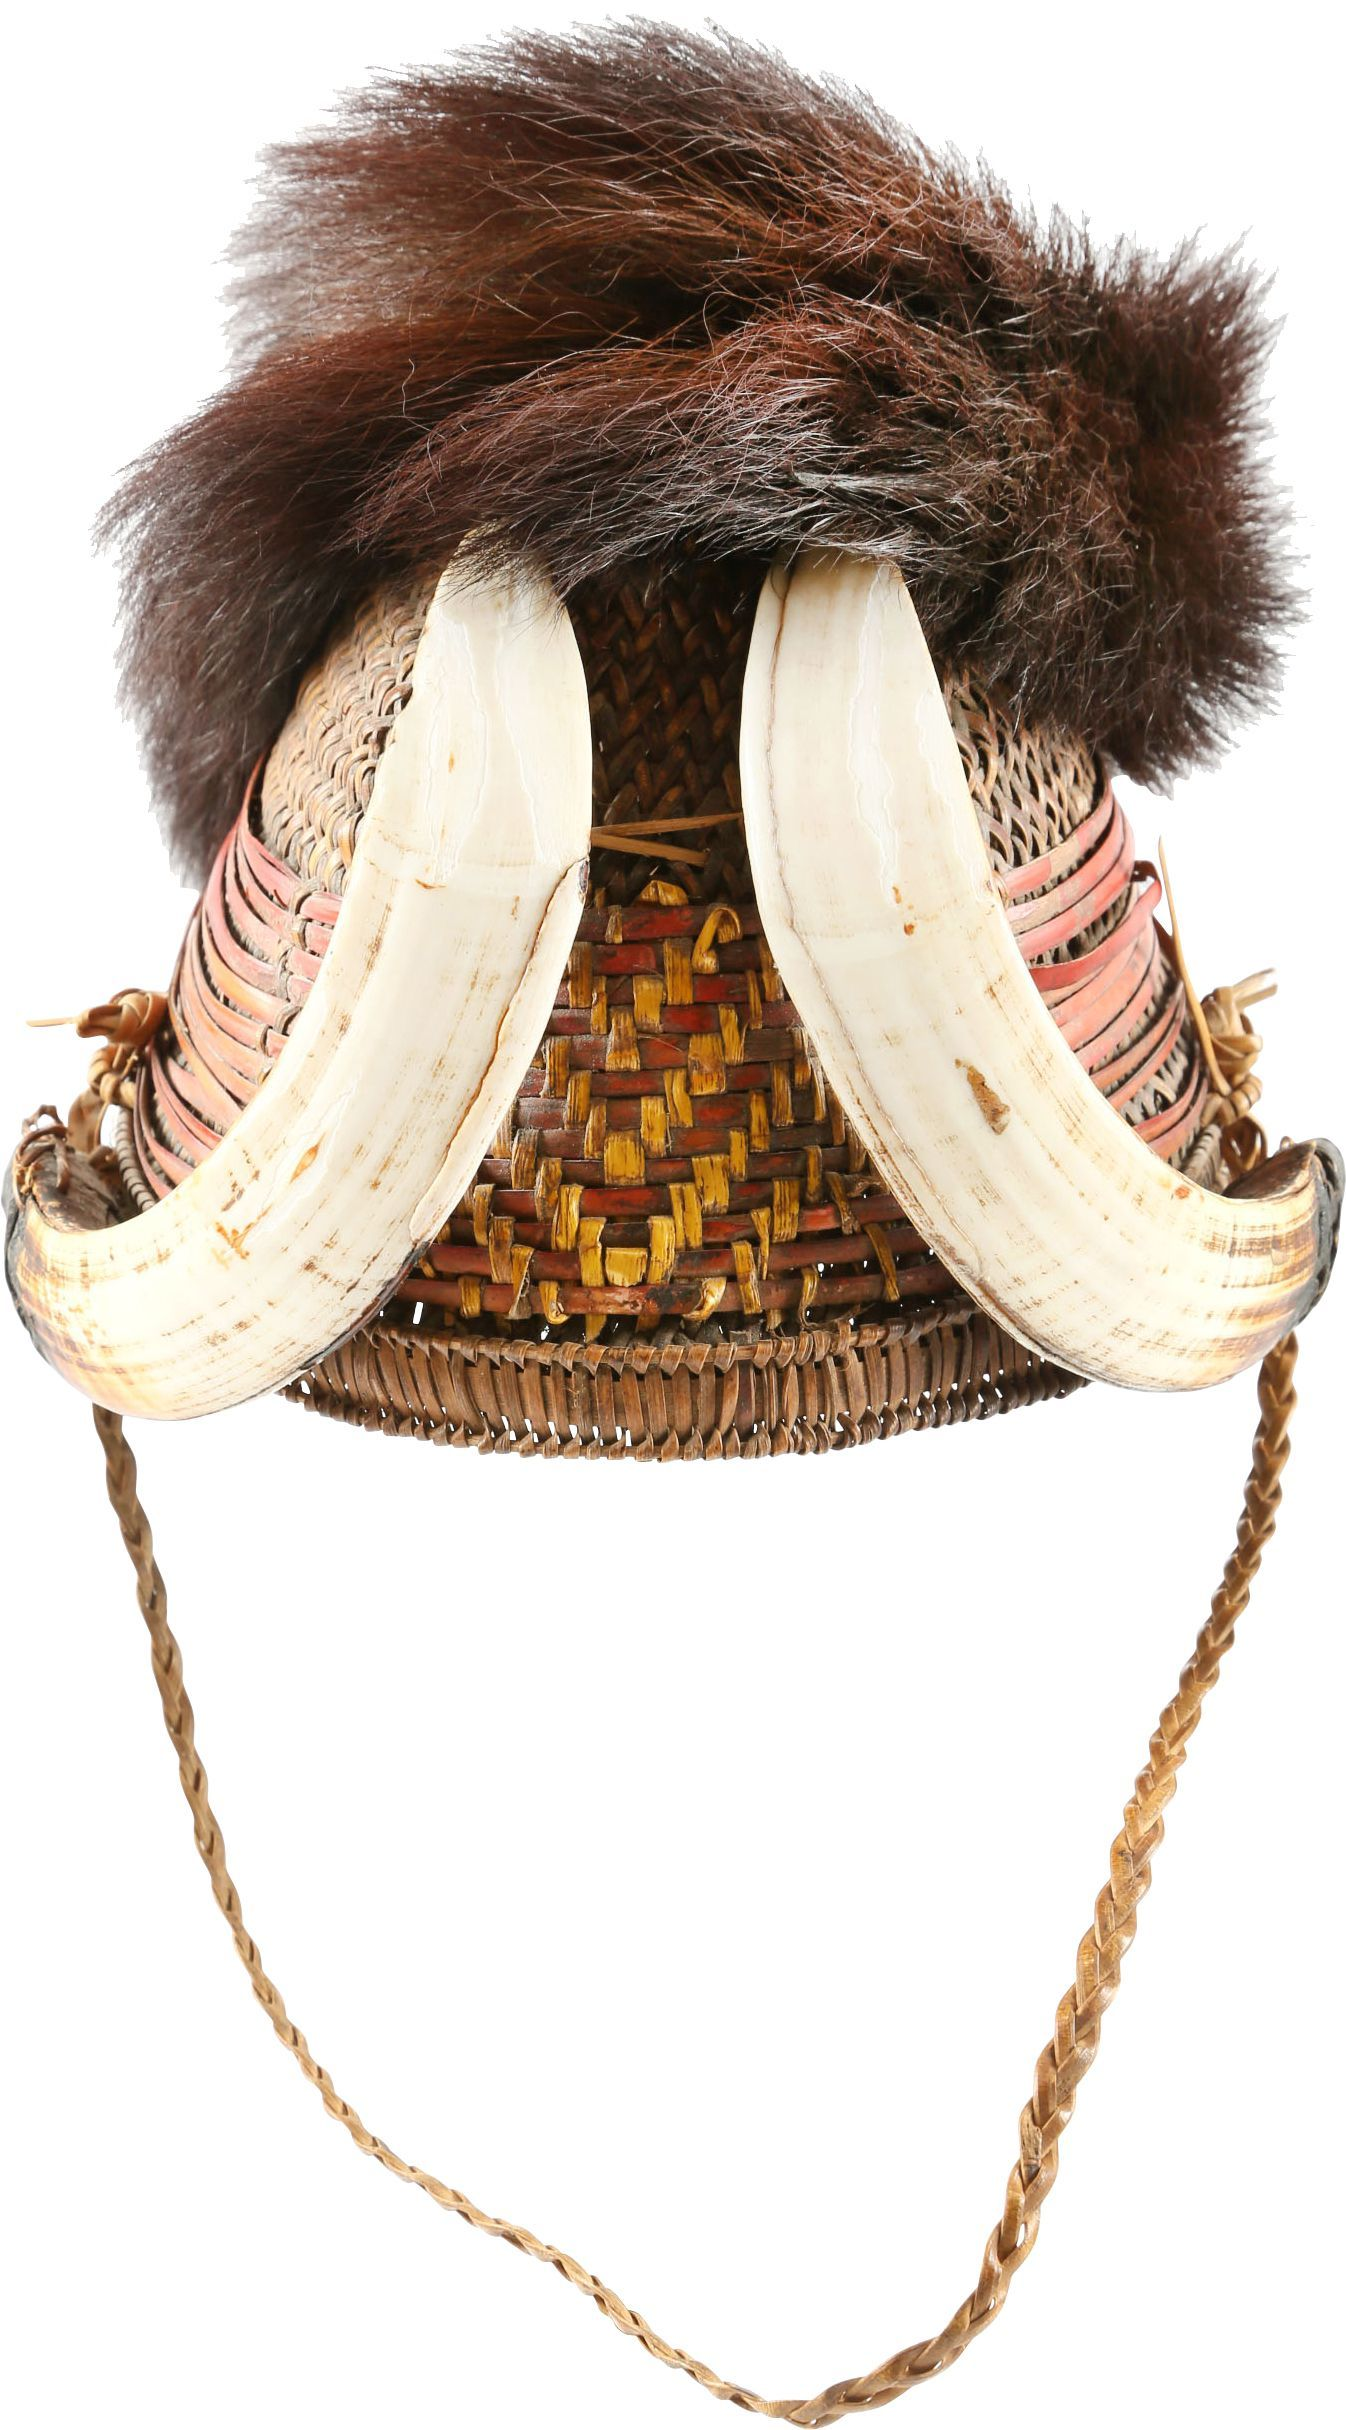 FINE NAGA HEADHUNTER'S WICKER HELMET/HAT